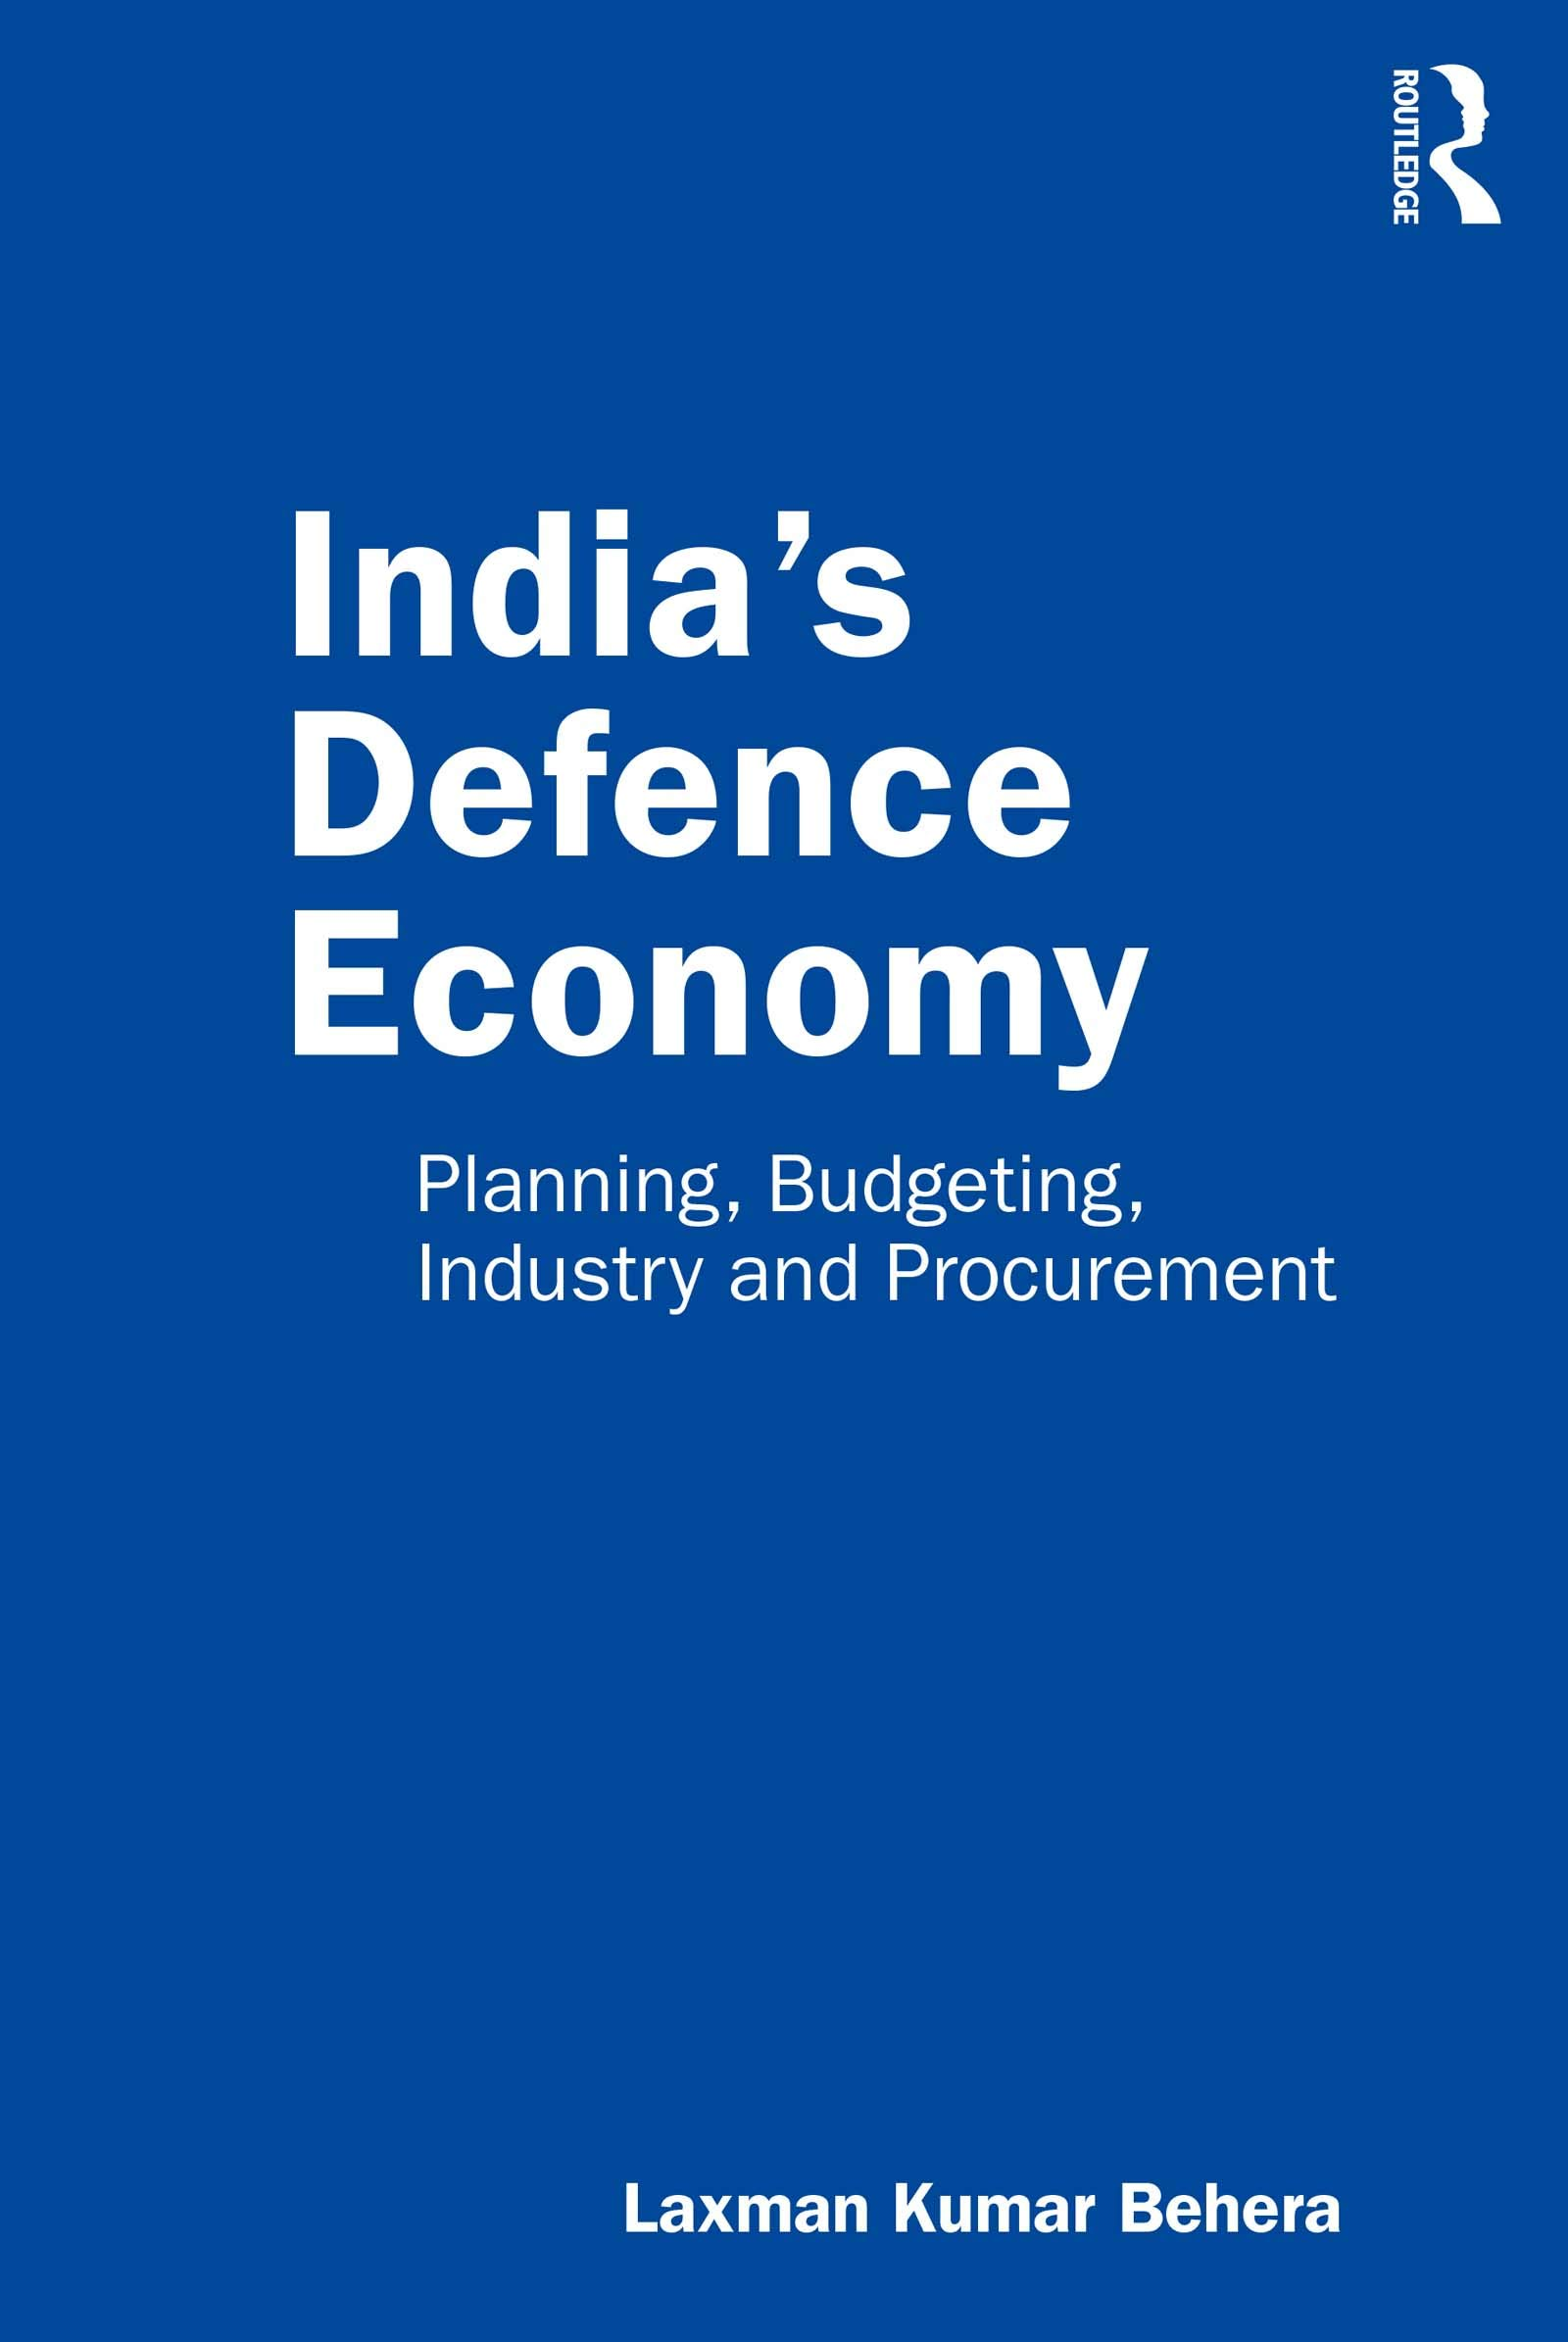 India's Defence Economy: Planning, Budgeting, Industry and Procurement